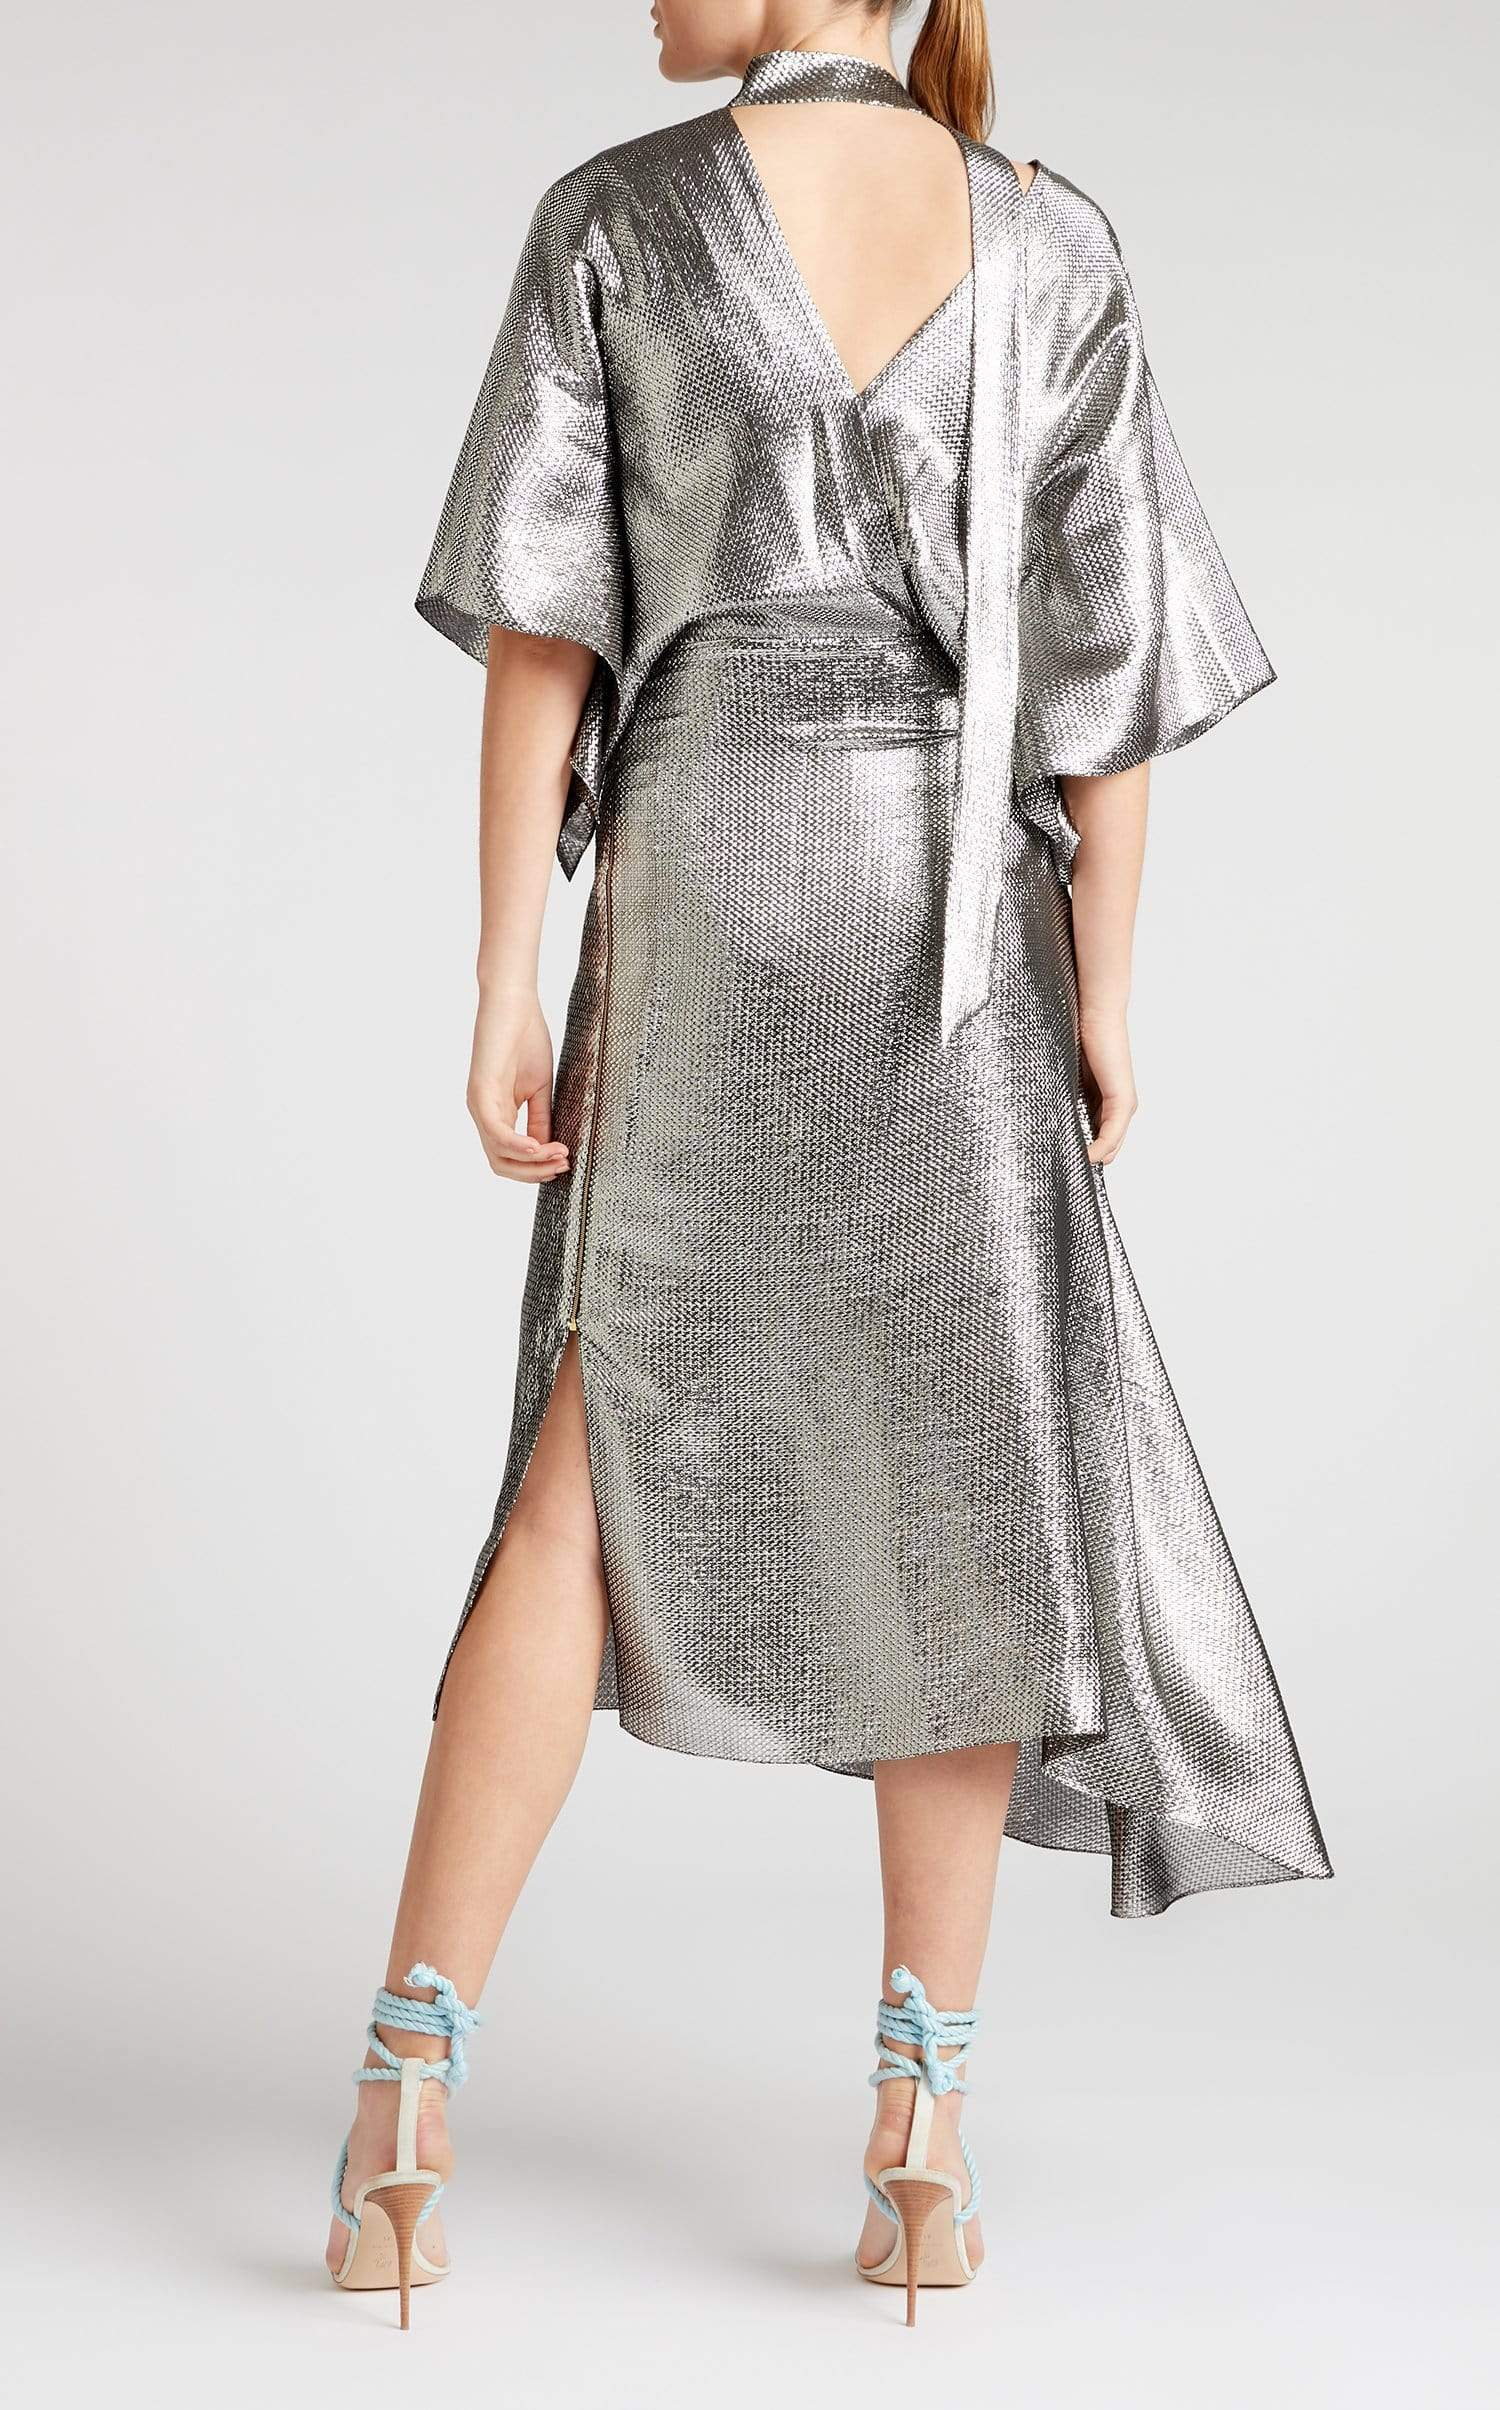 Meyers Dress In Silver from Roland Mouret